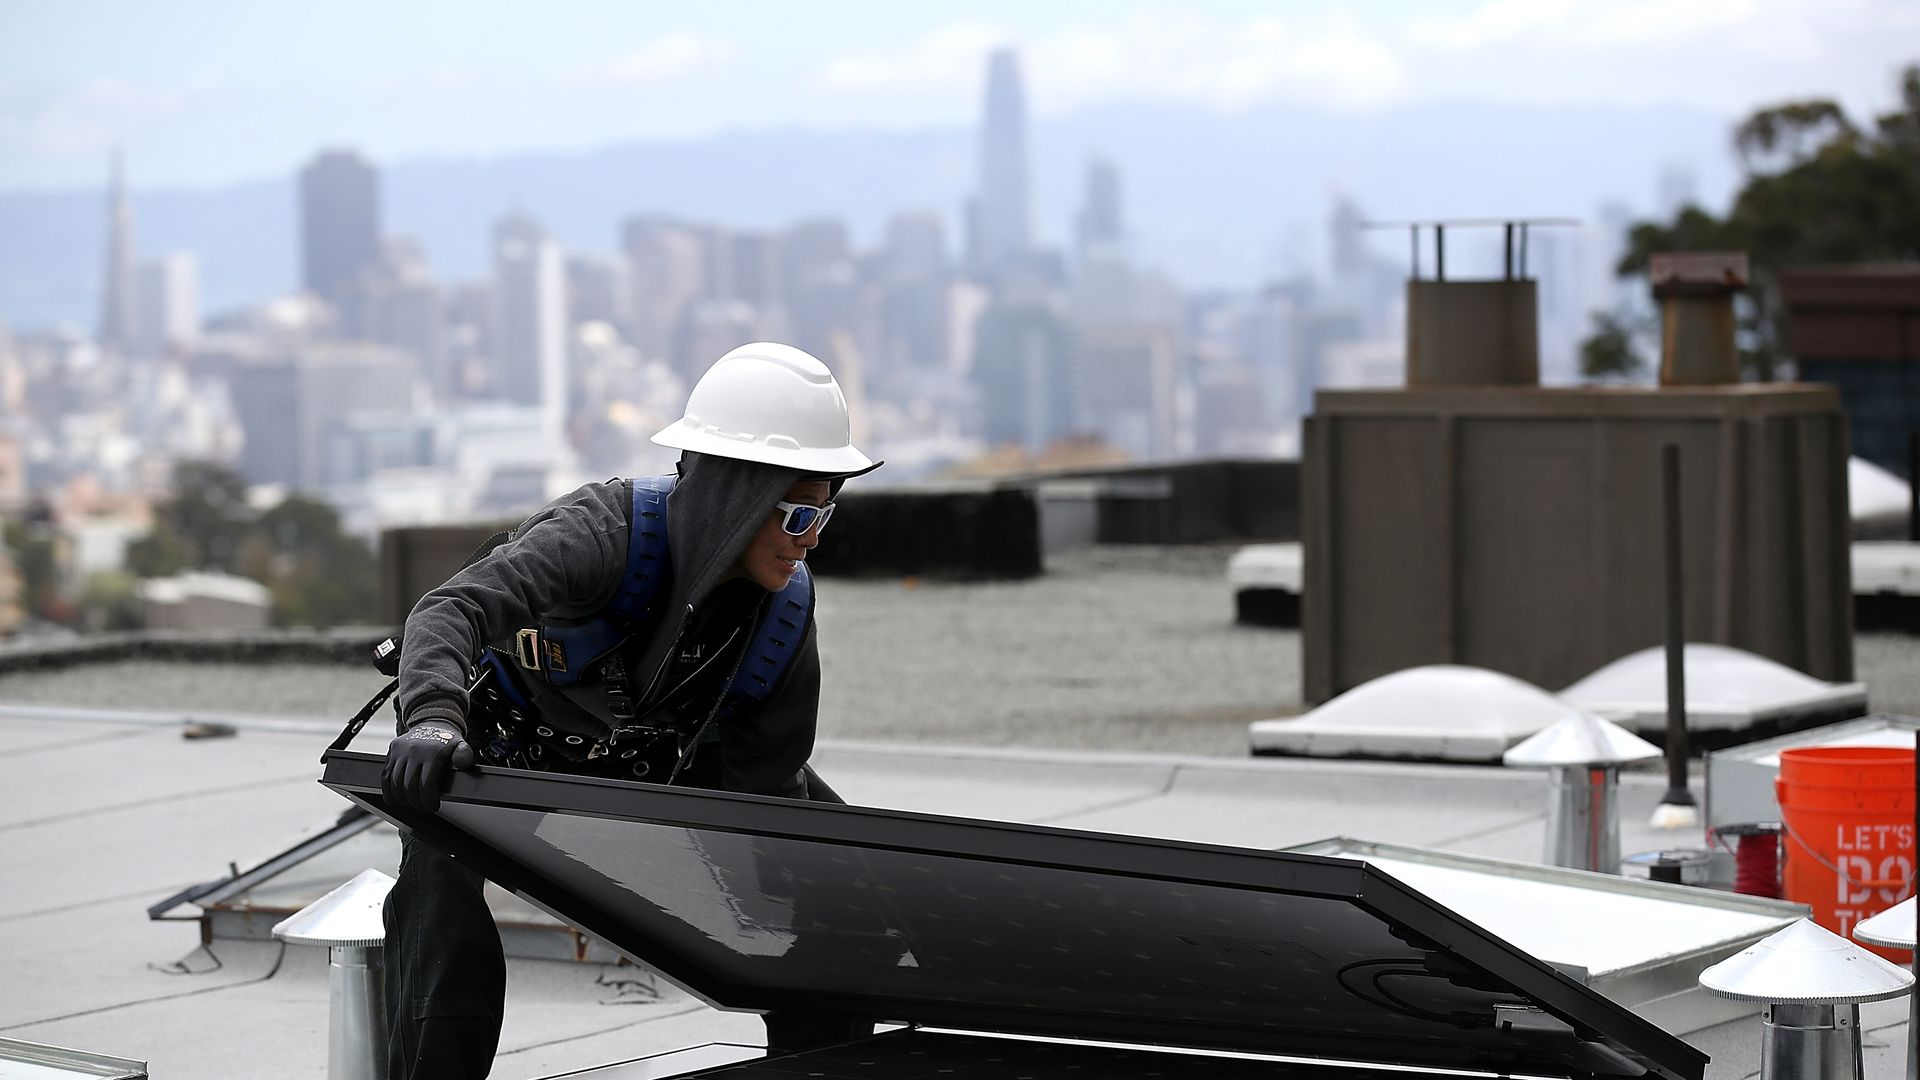 Luminalt solar installers Pam Quan moves a solar panel during an istallation on the roof of a home on May 9, 2018 in San Francisco, California.